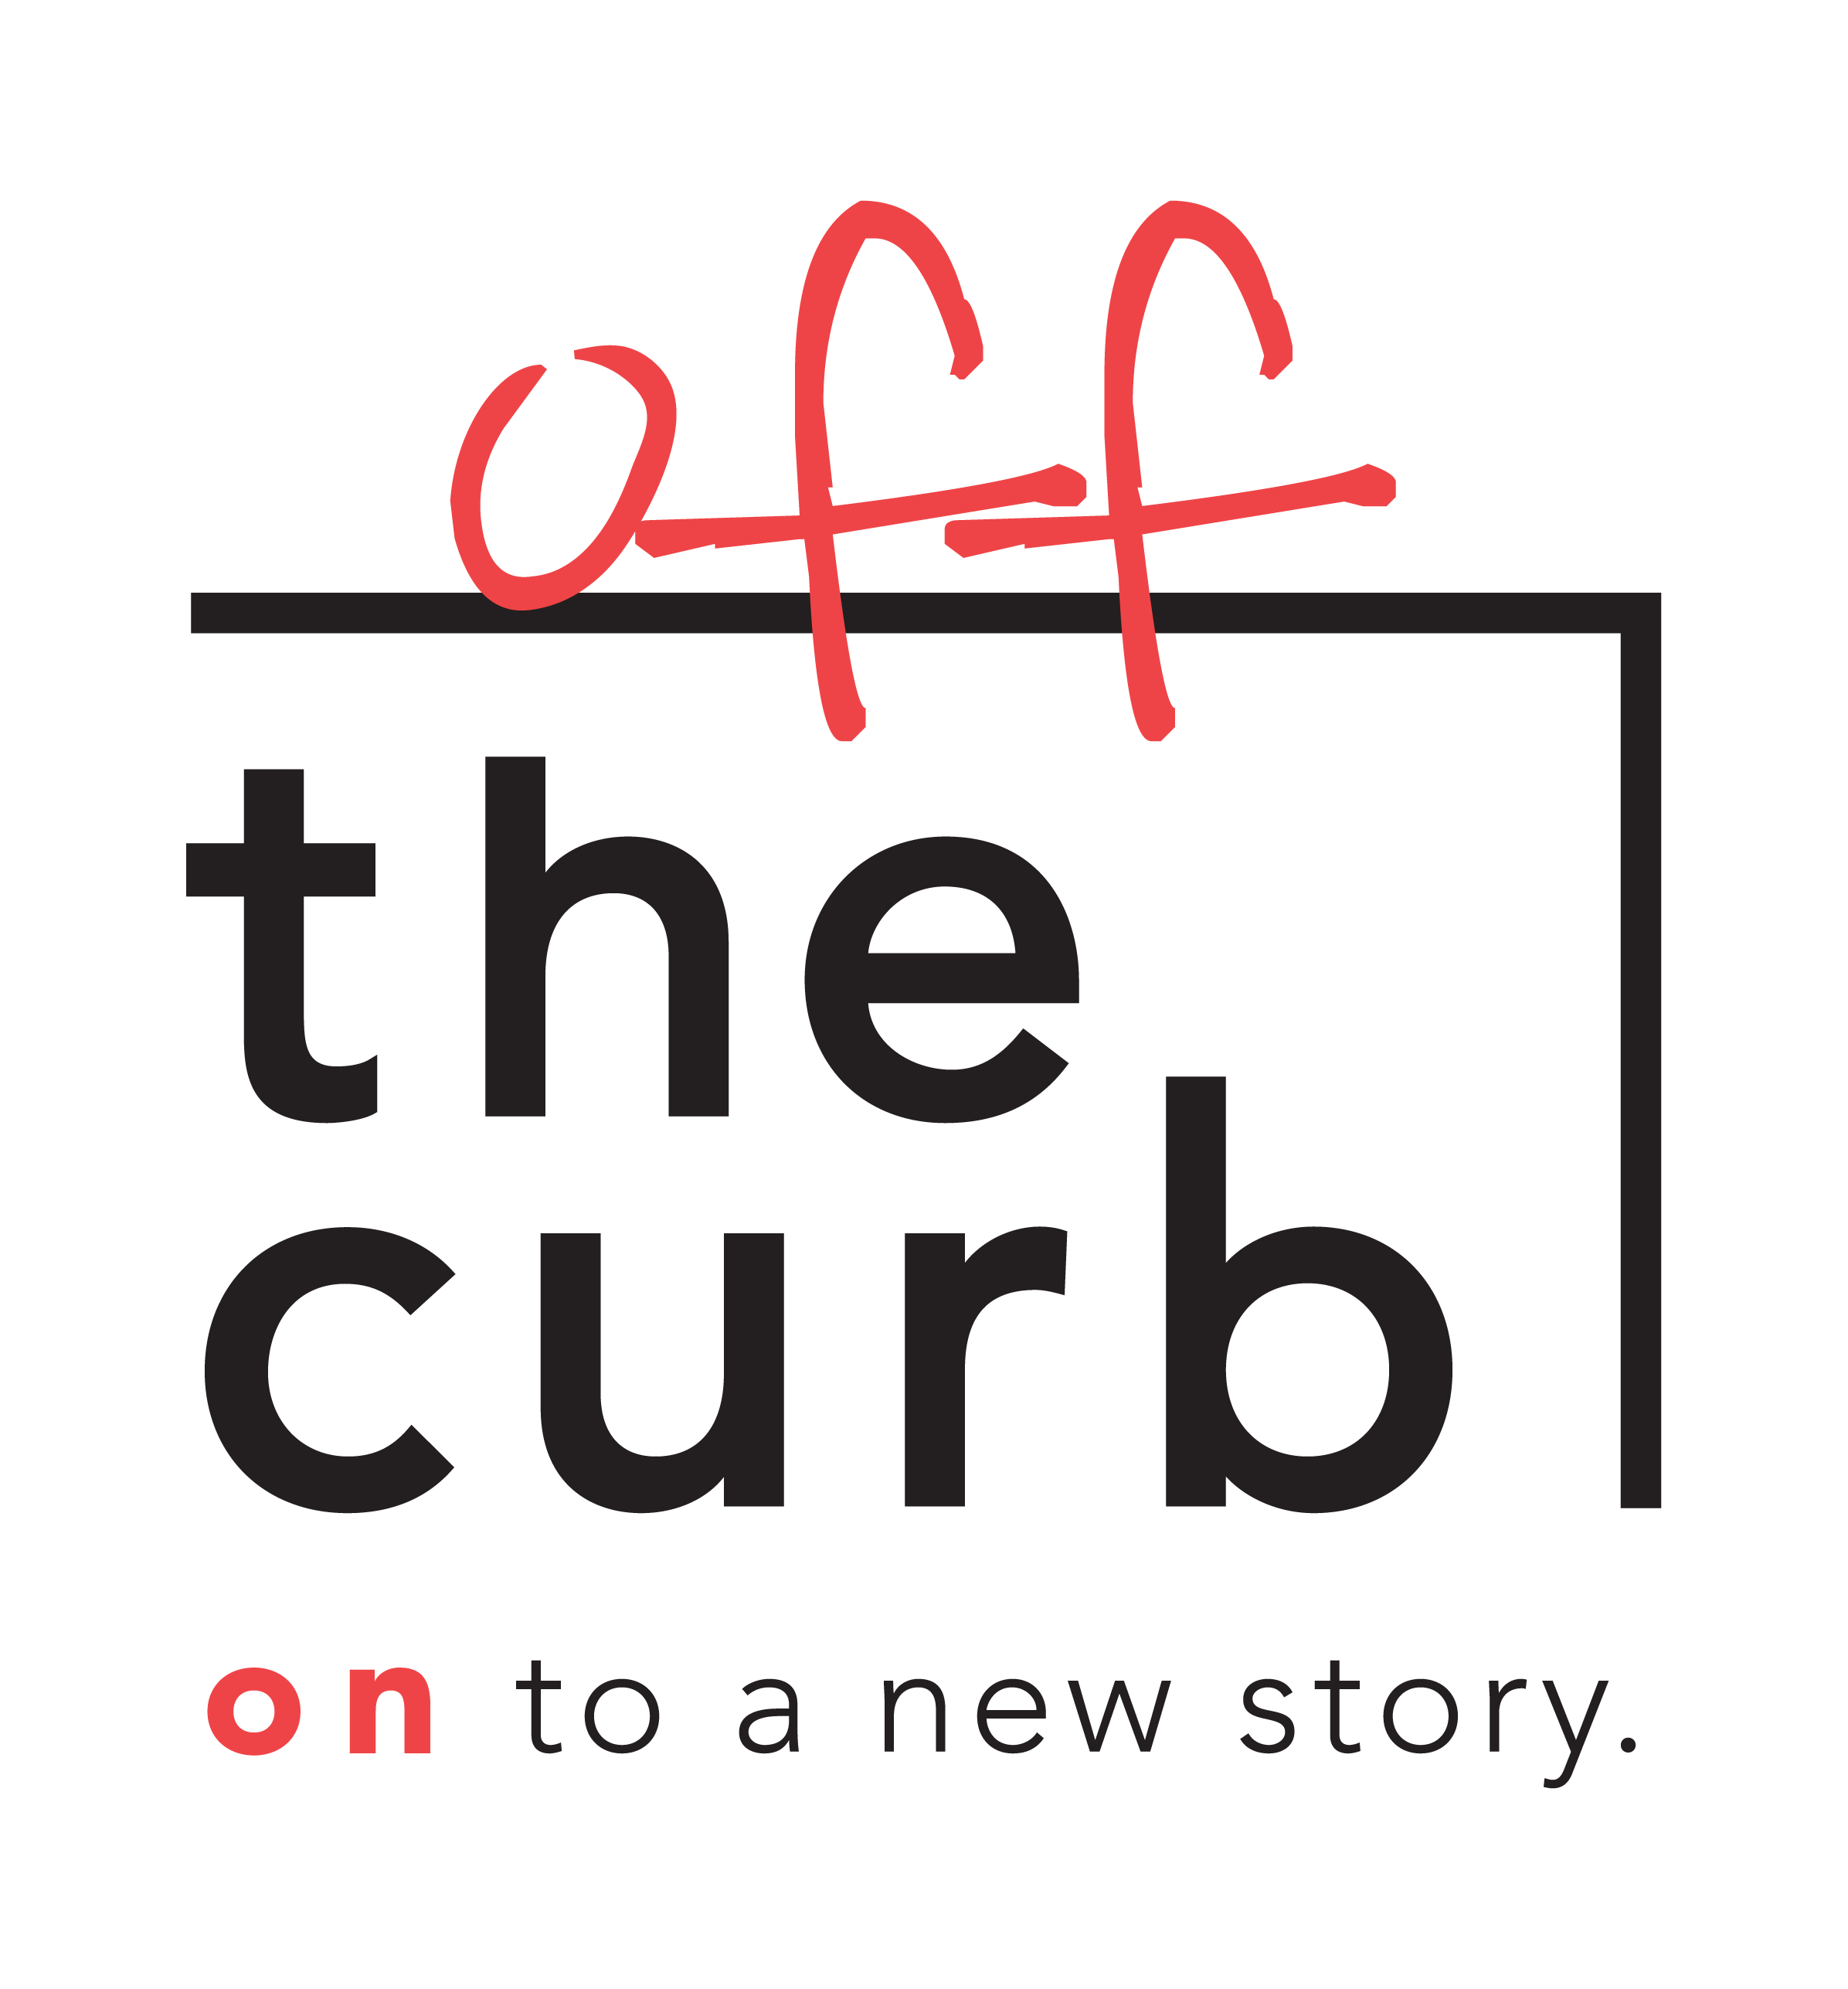 off-the-curb-logo-withtagline-color.png